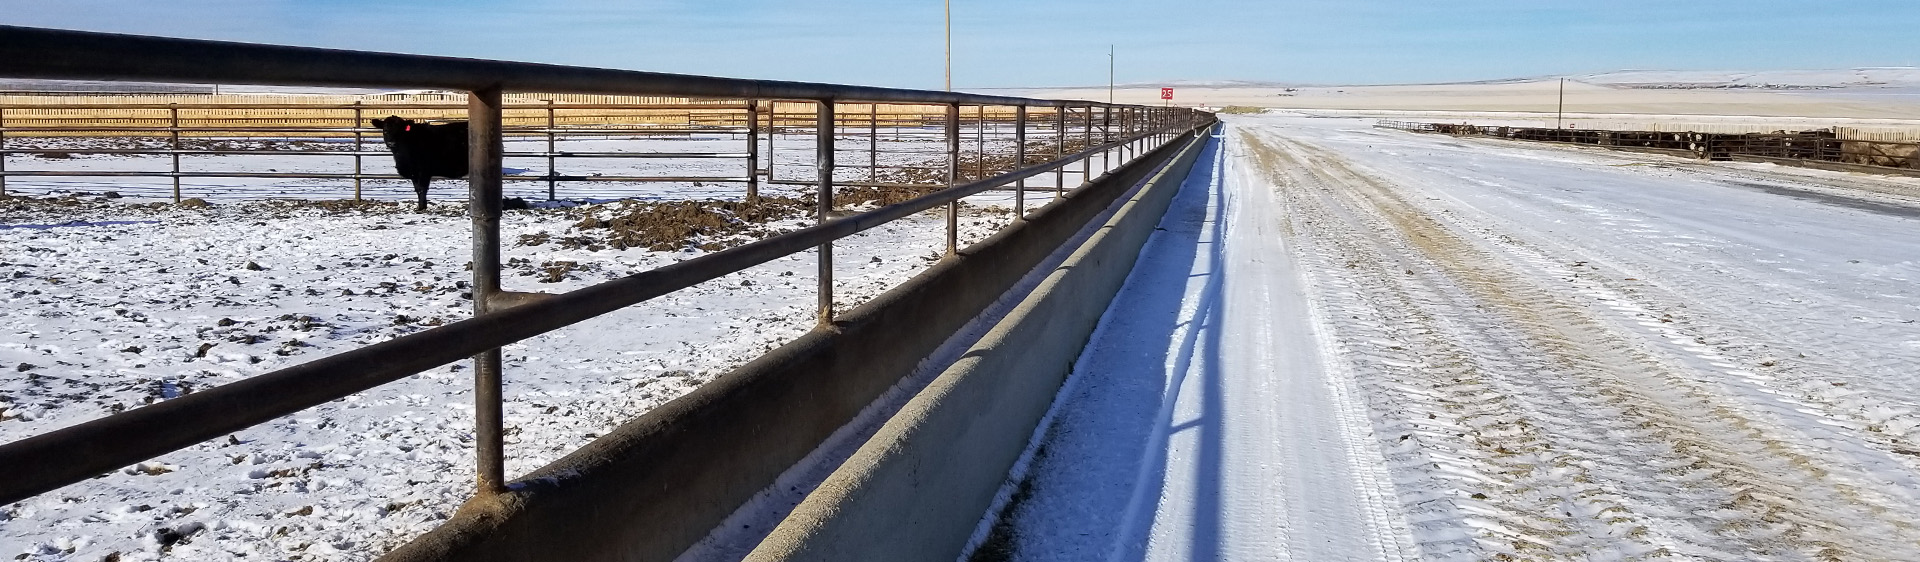 Calgary  Concrete Feed Bunks  , Concrete Feed Pads  and  Slip Form Feed Bunks